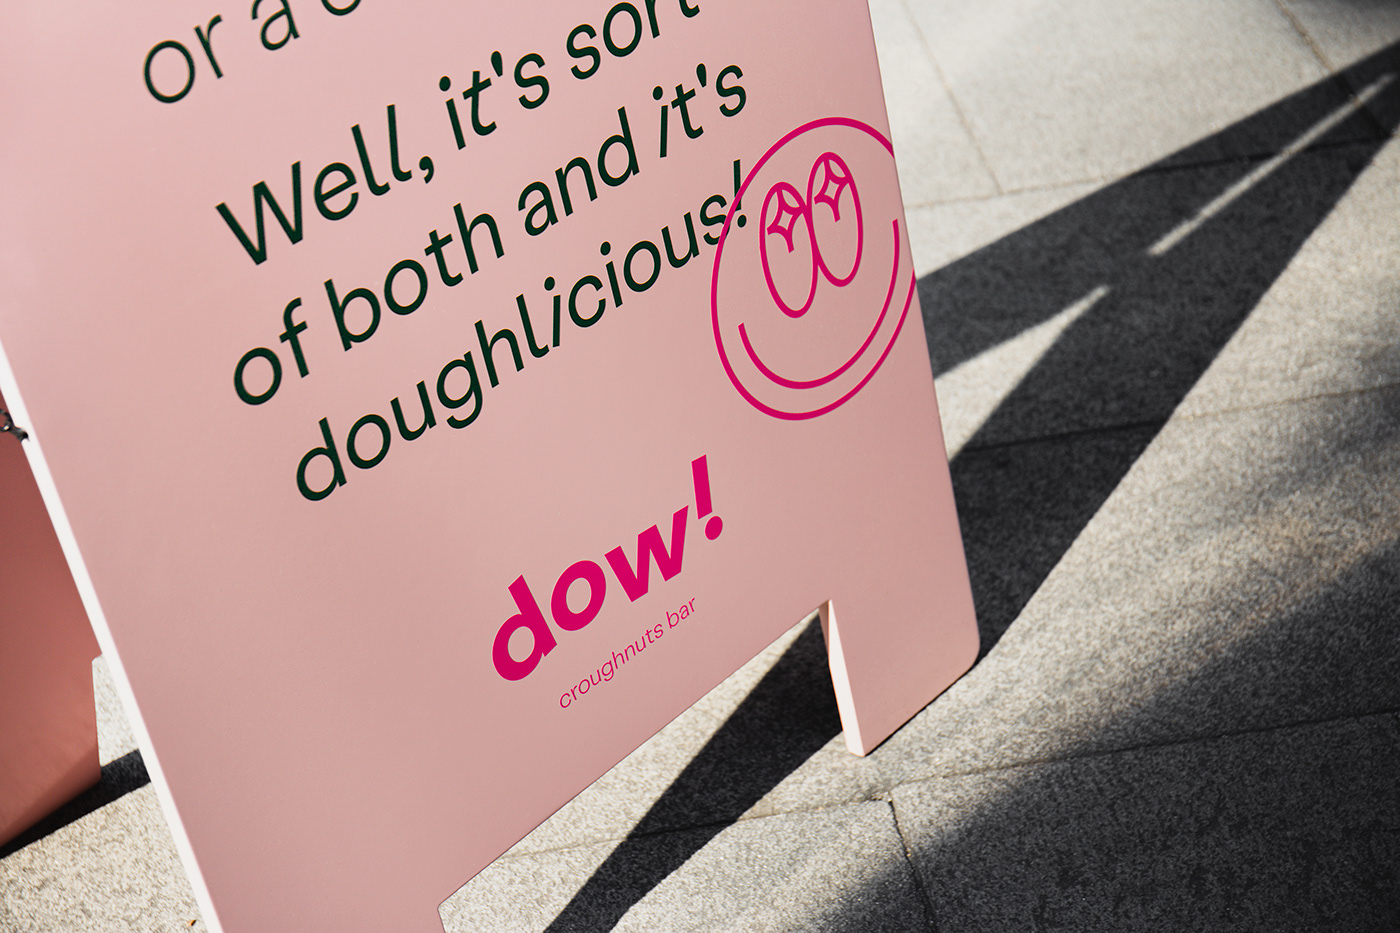 another collective Braga branding  Croughnuts Doughnuts dow Logotype Photography  typography